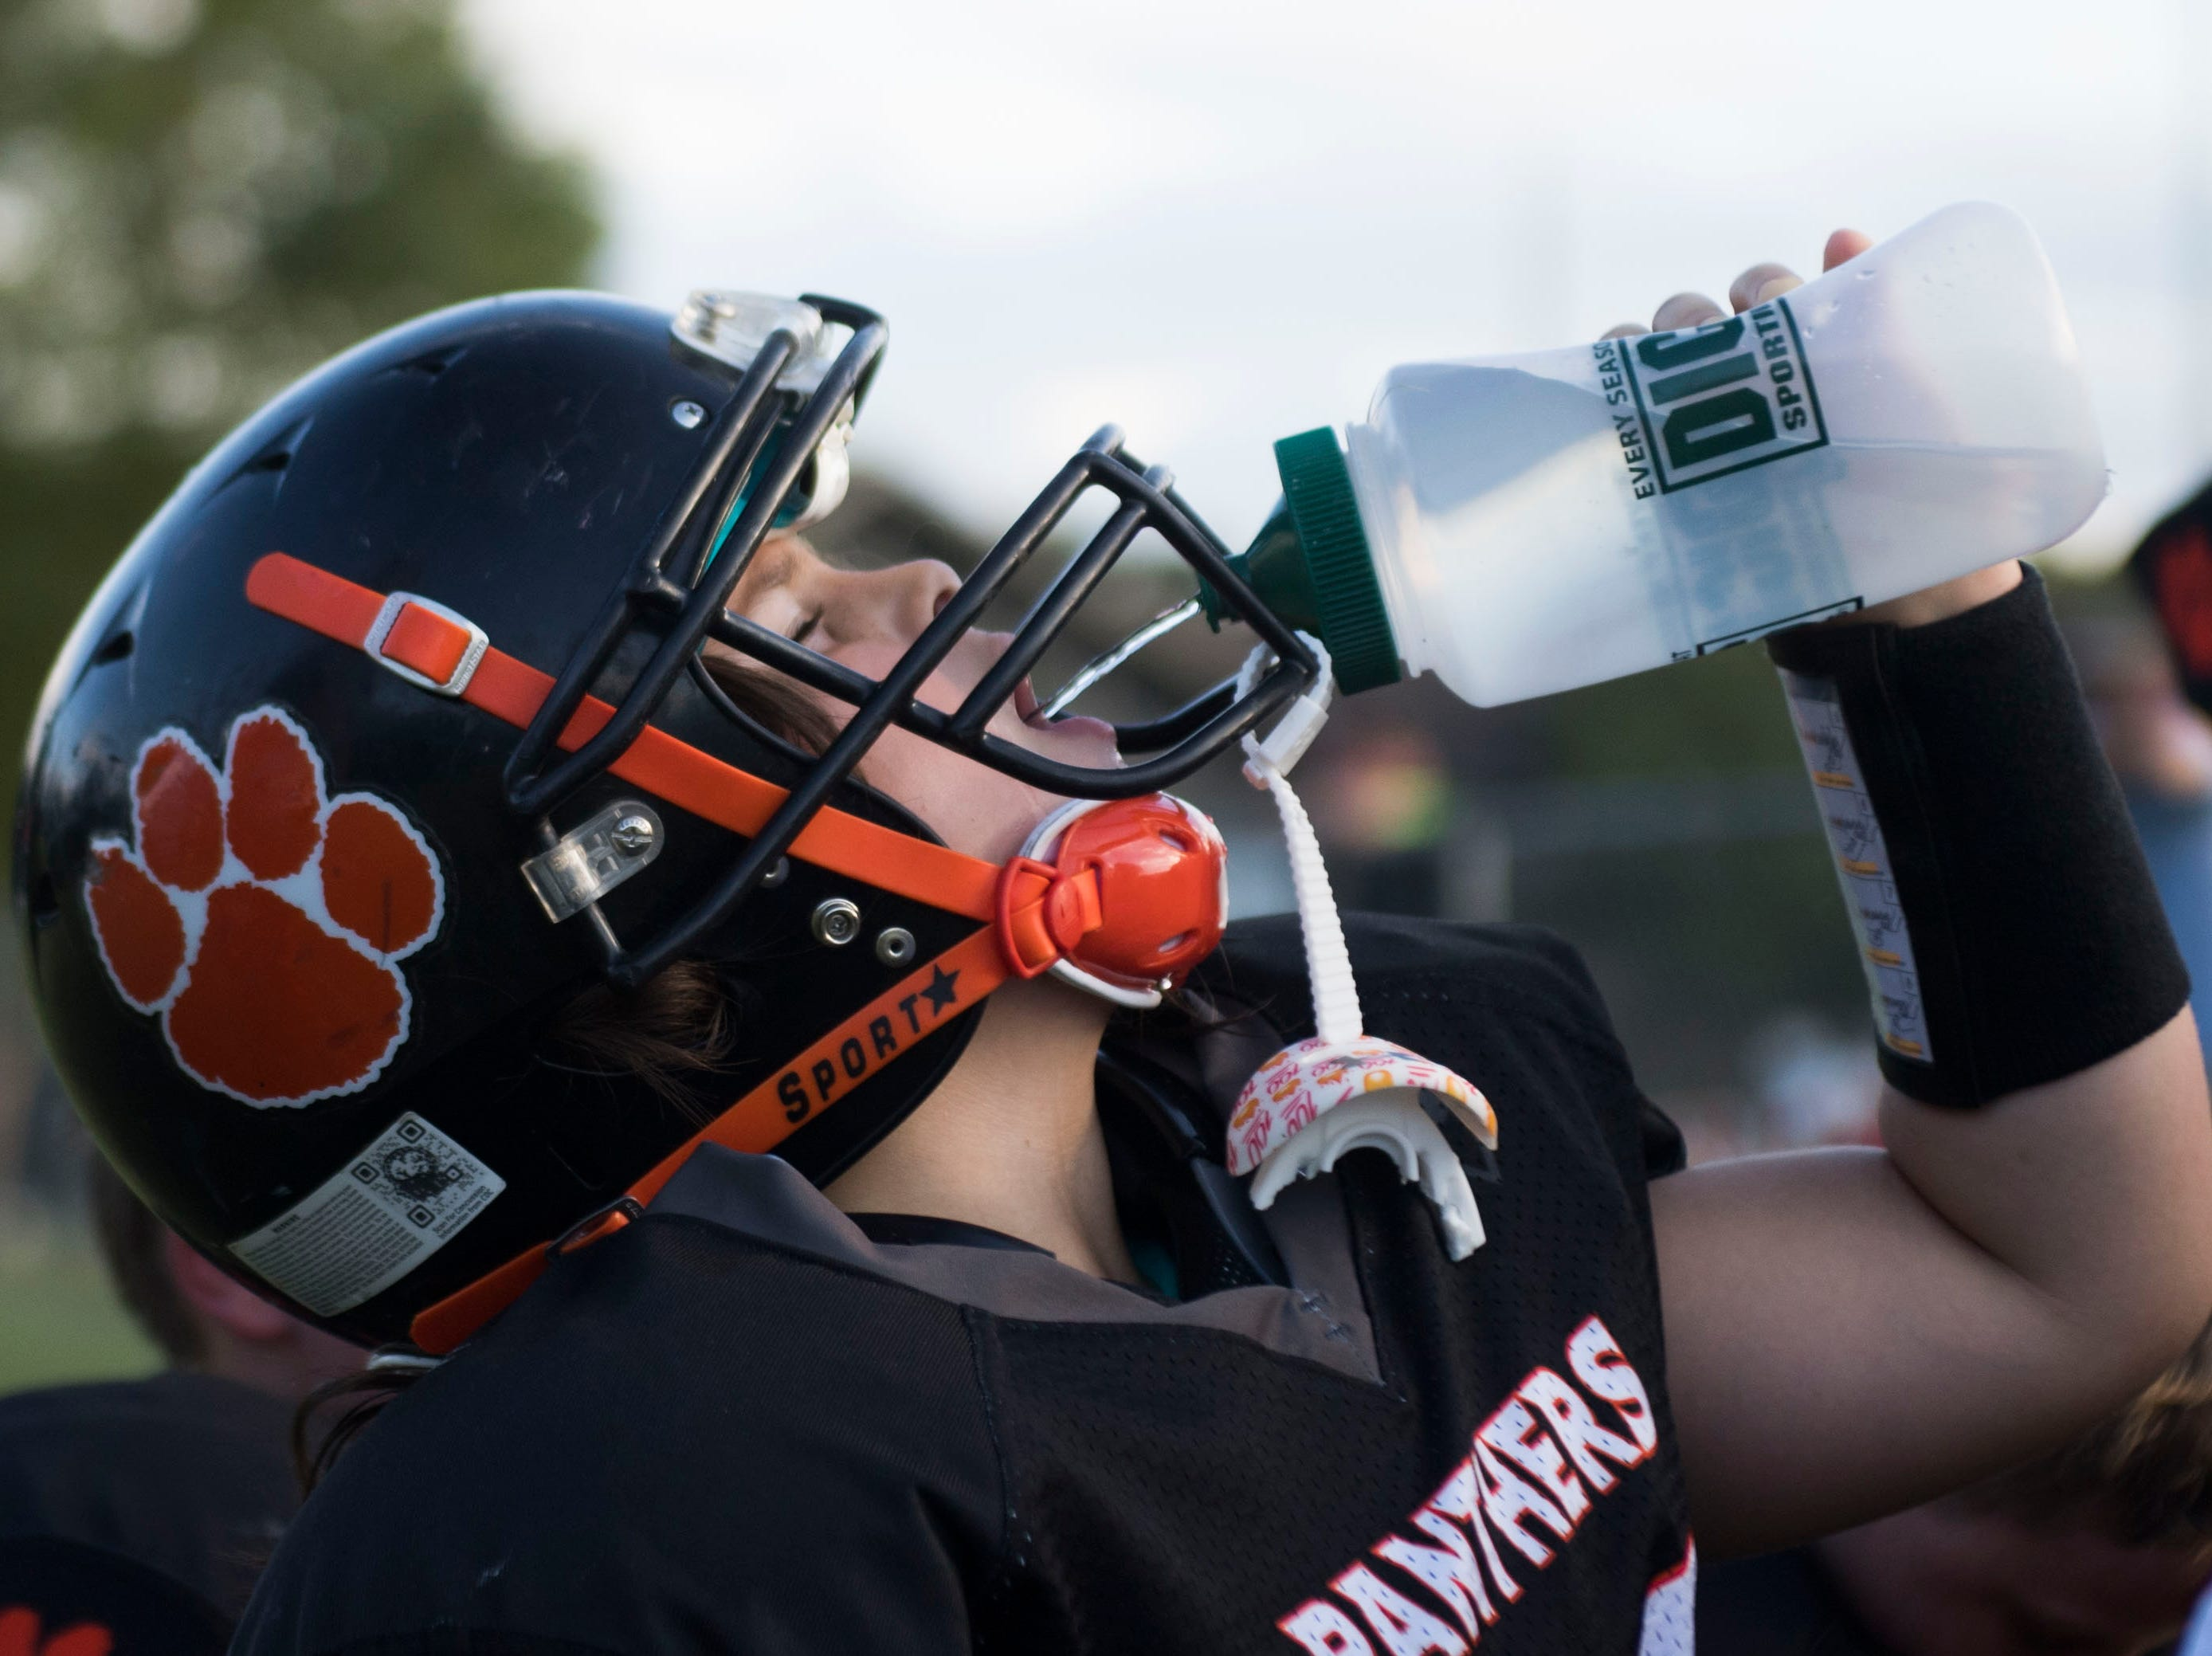 Ava Wooten, 9, of Powell, takes a drink while playing with her 9U Powell Youth football team Tuesday, Sept. 11, 2018. Ava is the only girl on her team.